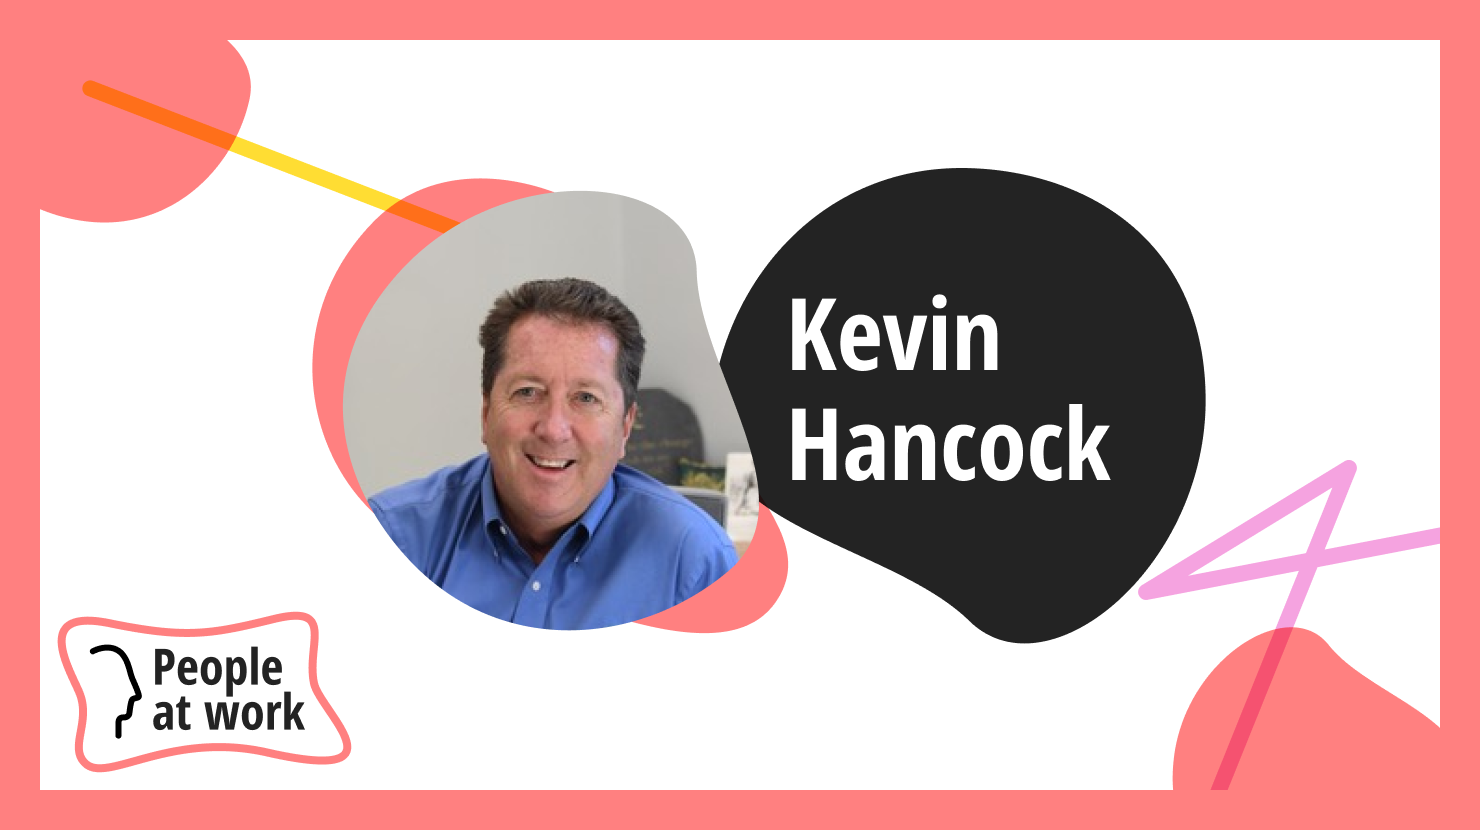 We need more from business and it starts with listening says Kevin Hancock